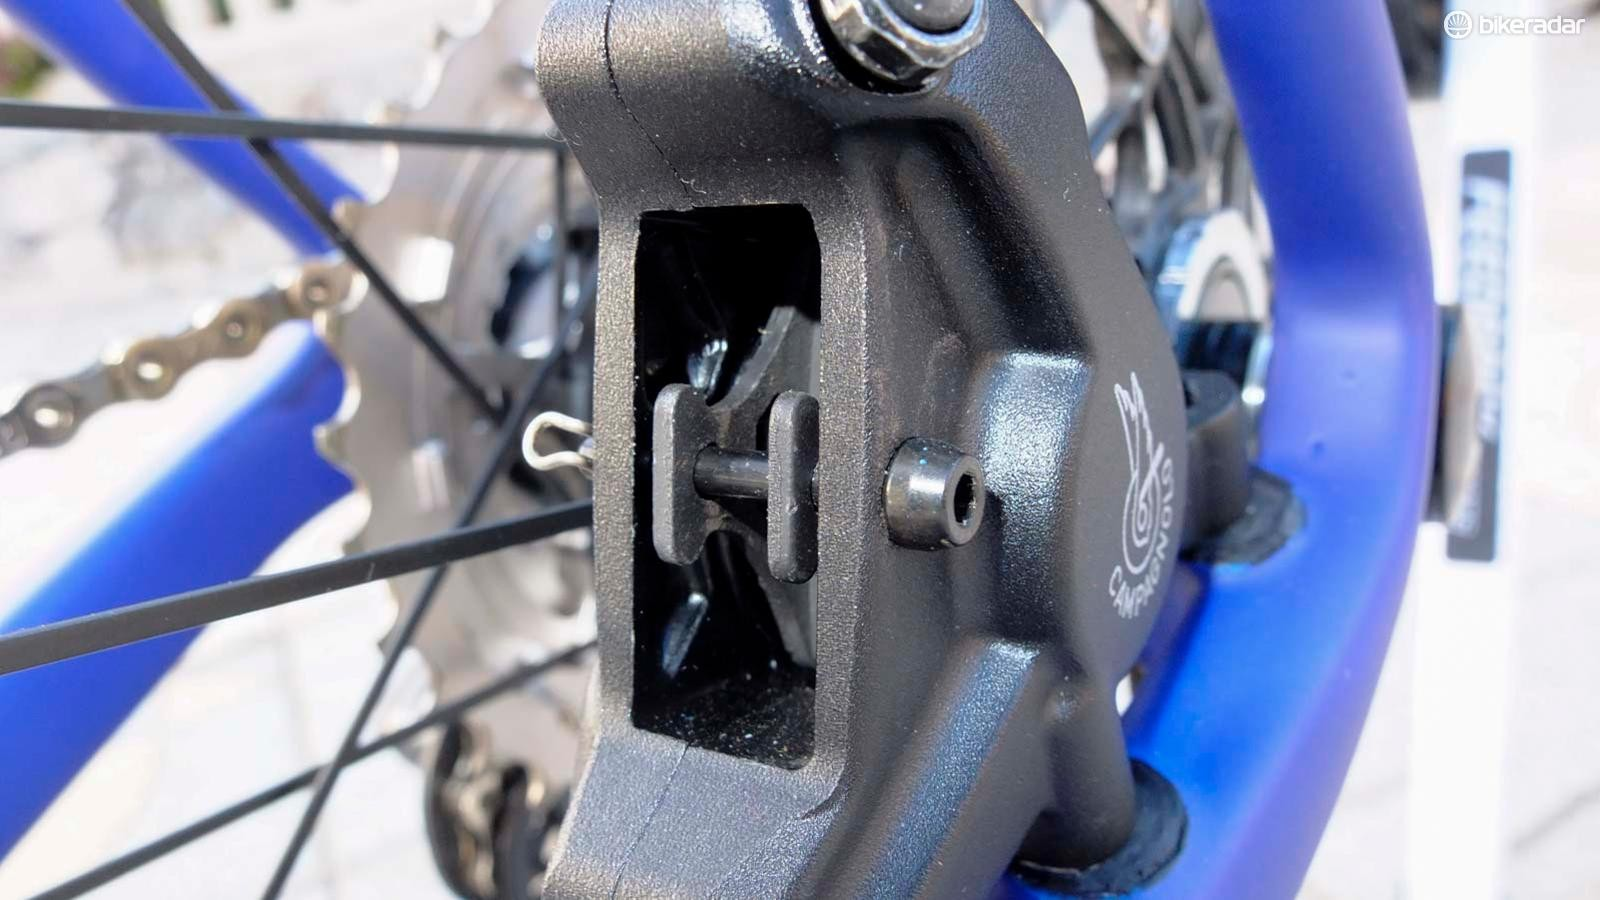 The rotor size-specific calipers have pad return springs, which are magnetic and extremely effective